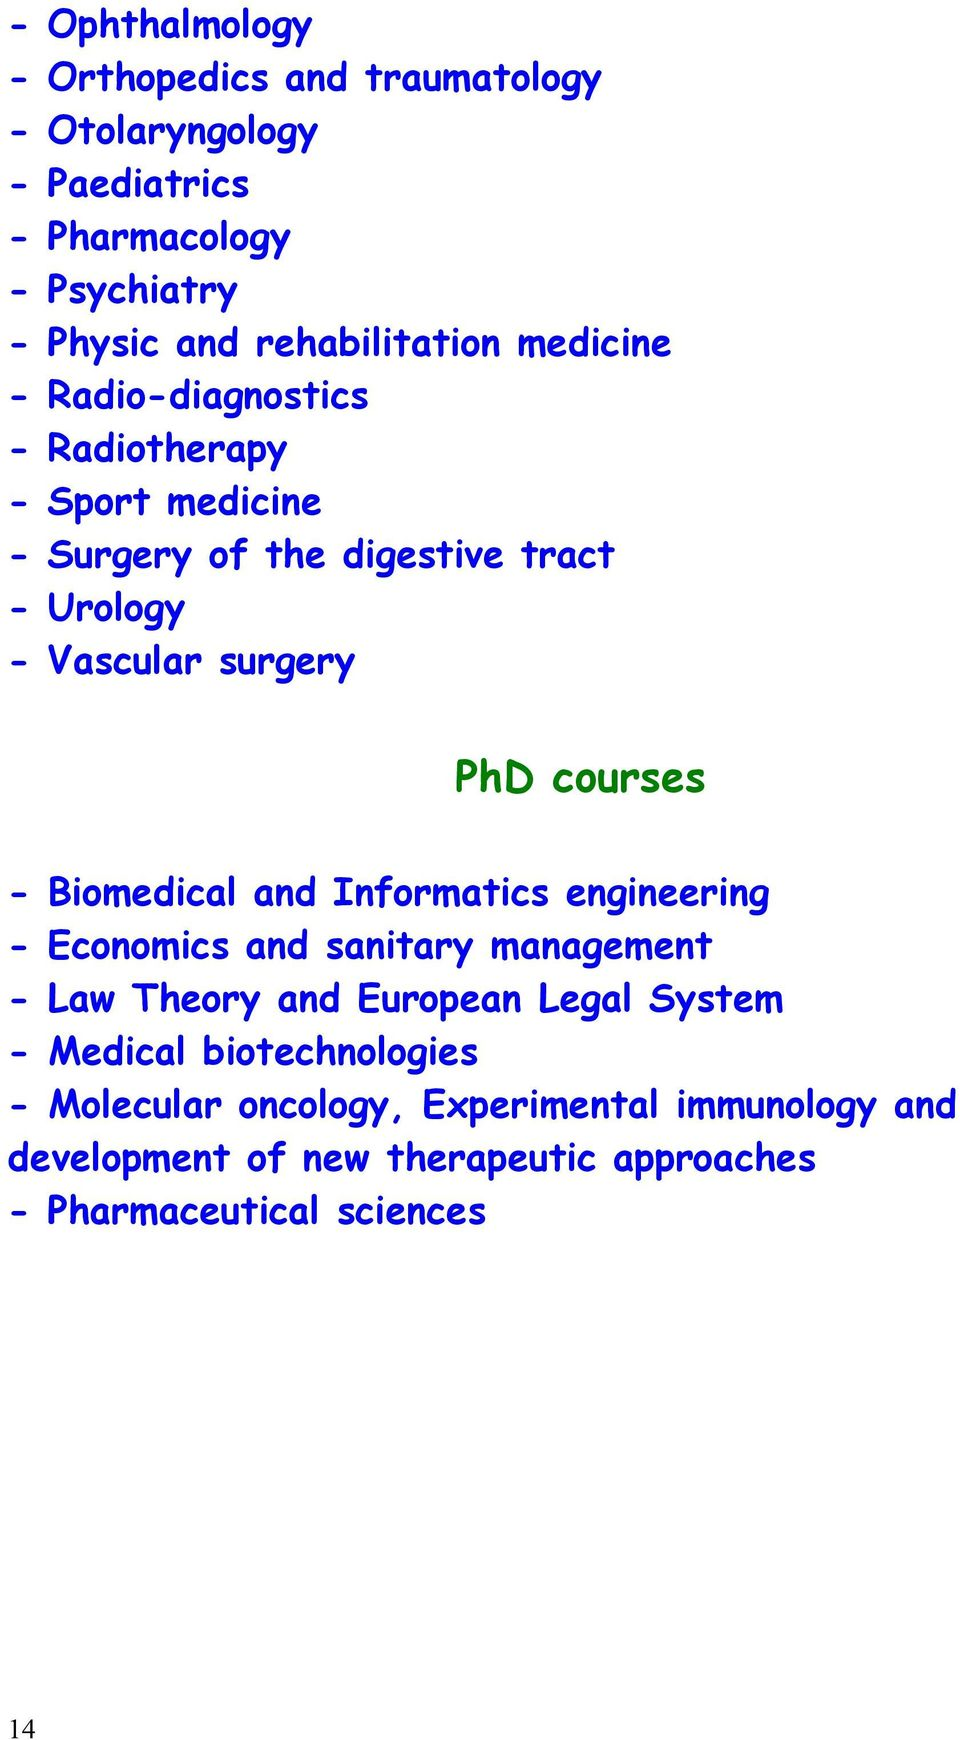 surgery PhD courses - Biomedical and Informatics engineering - Economics and sanitary management - Law Theory and European Legal